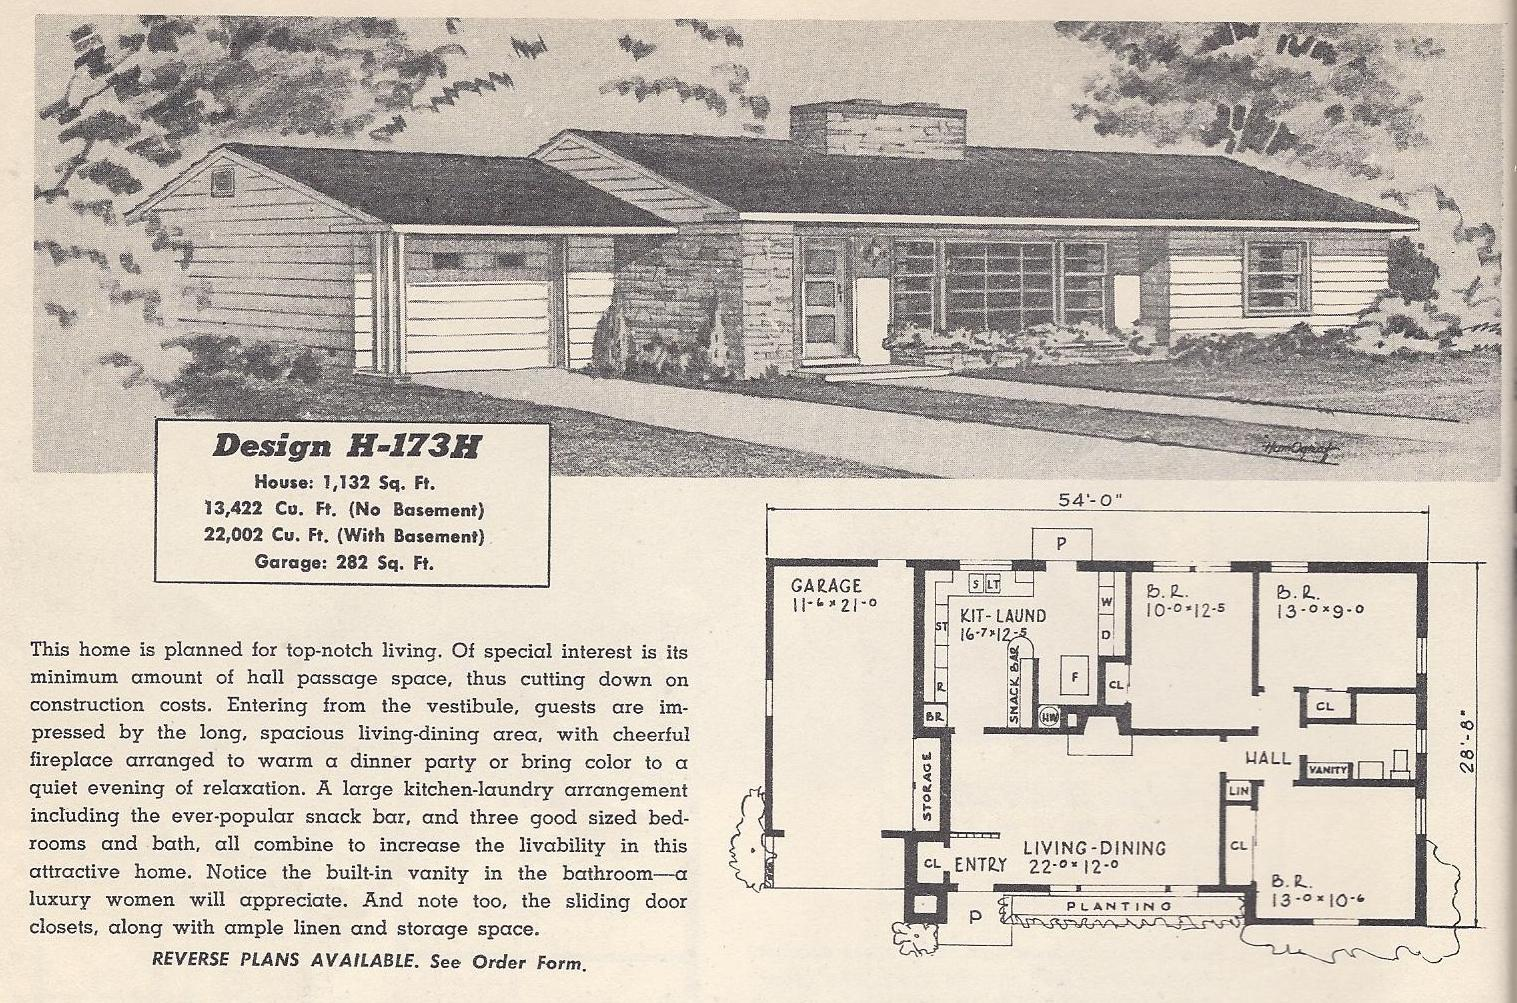 Vintage house plans 173h antique alter ego Vintage home architecture